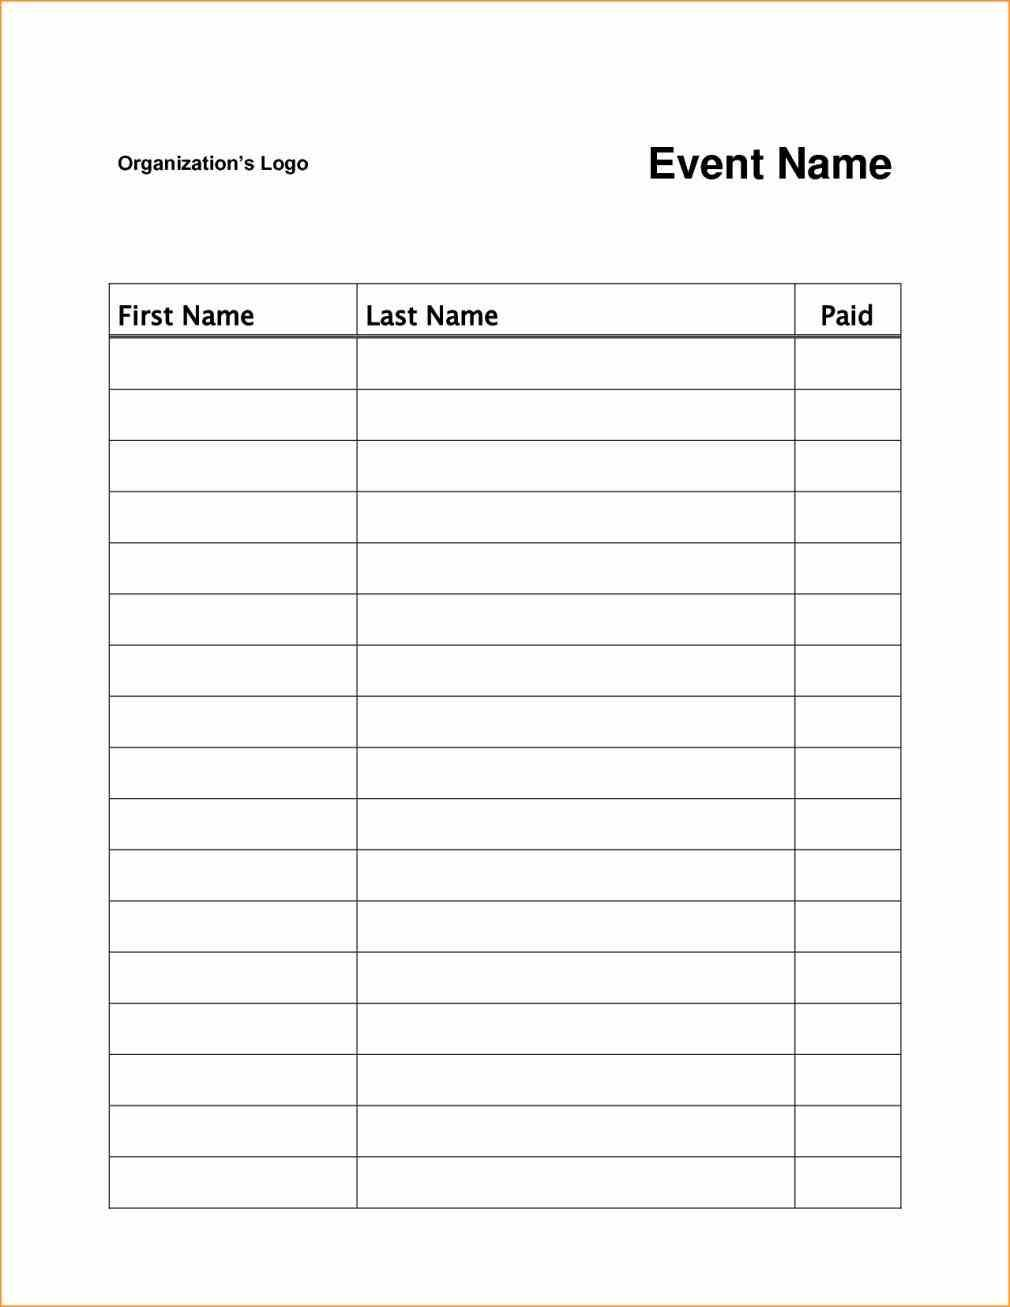 Event Or Class Workshop Forms A Sign Up Sheet Template Word Simple